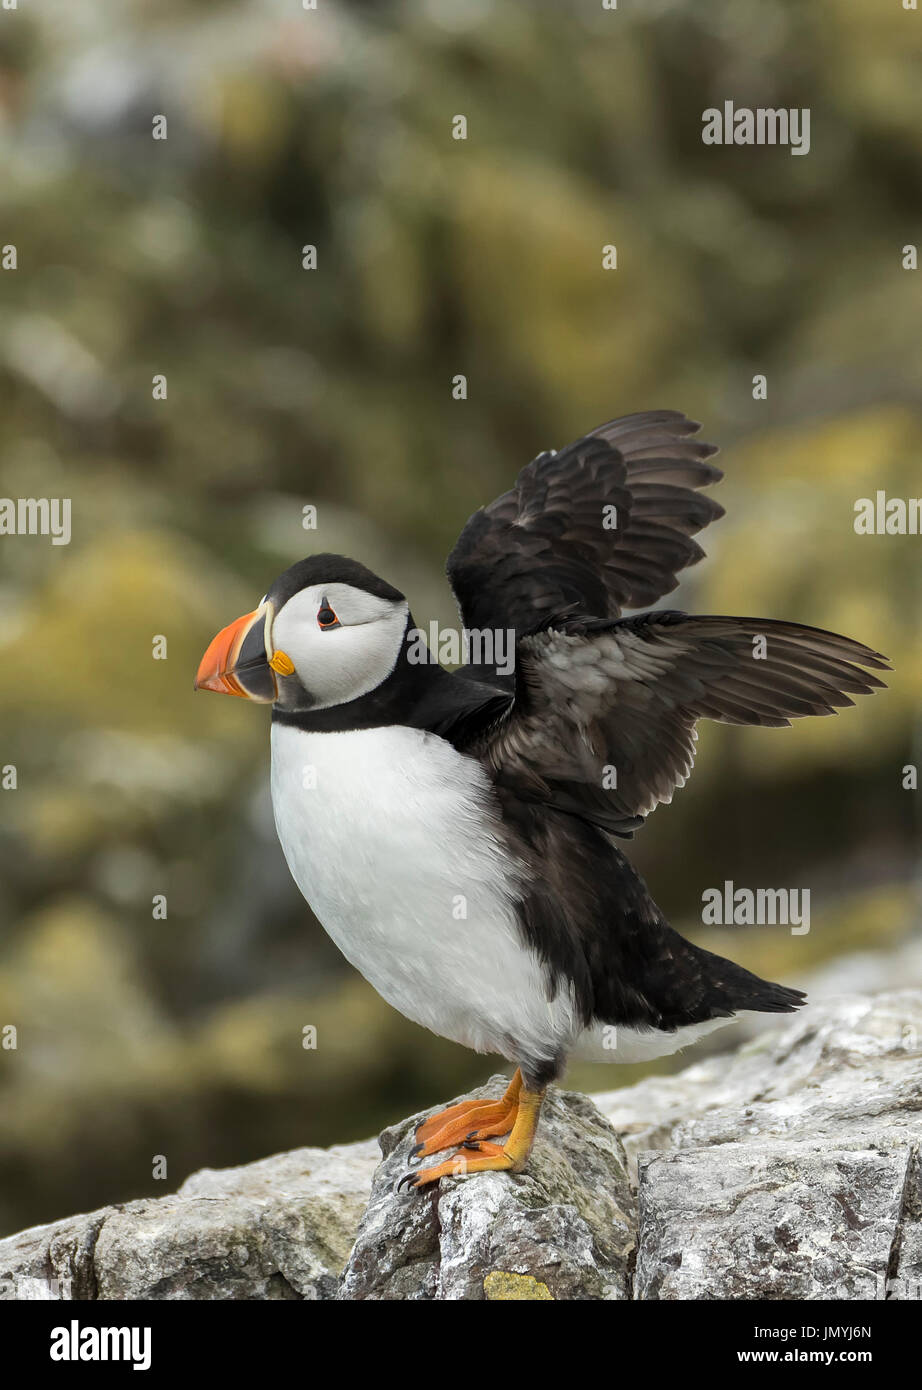 Puffin flapping wings - Stock Image